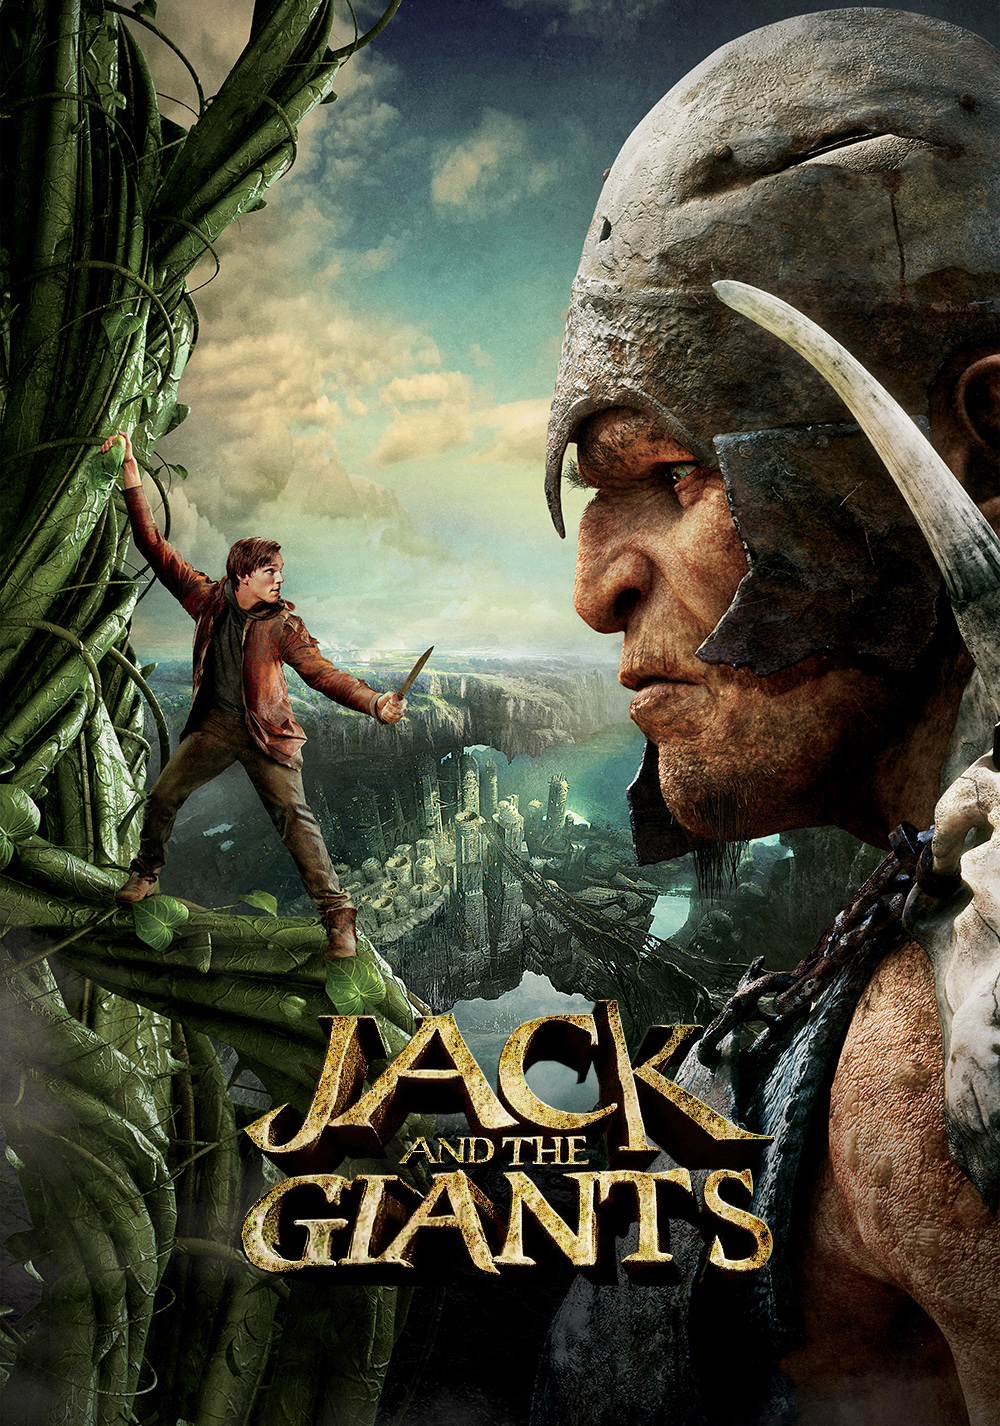 JACK THE GIANT SLAYER (2013) TAMIL DUBBED HD